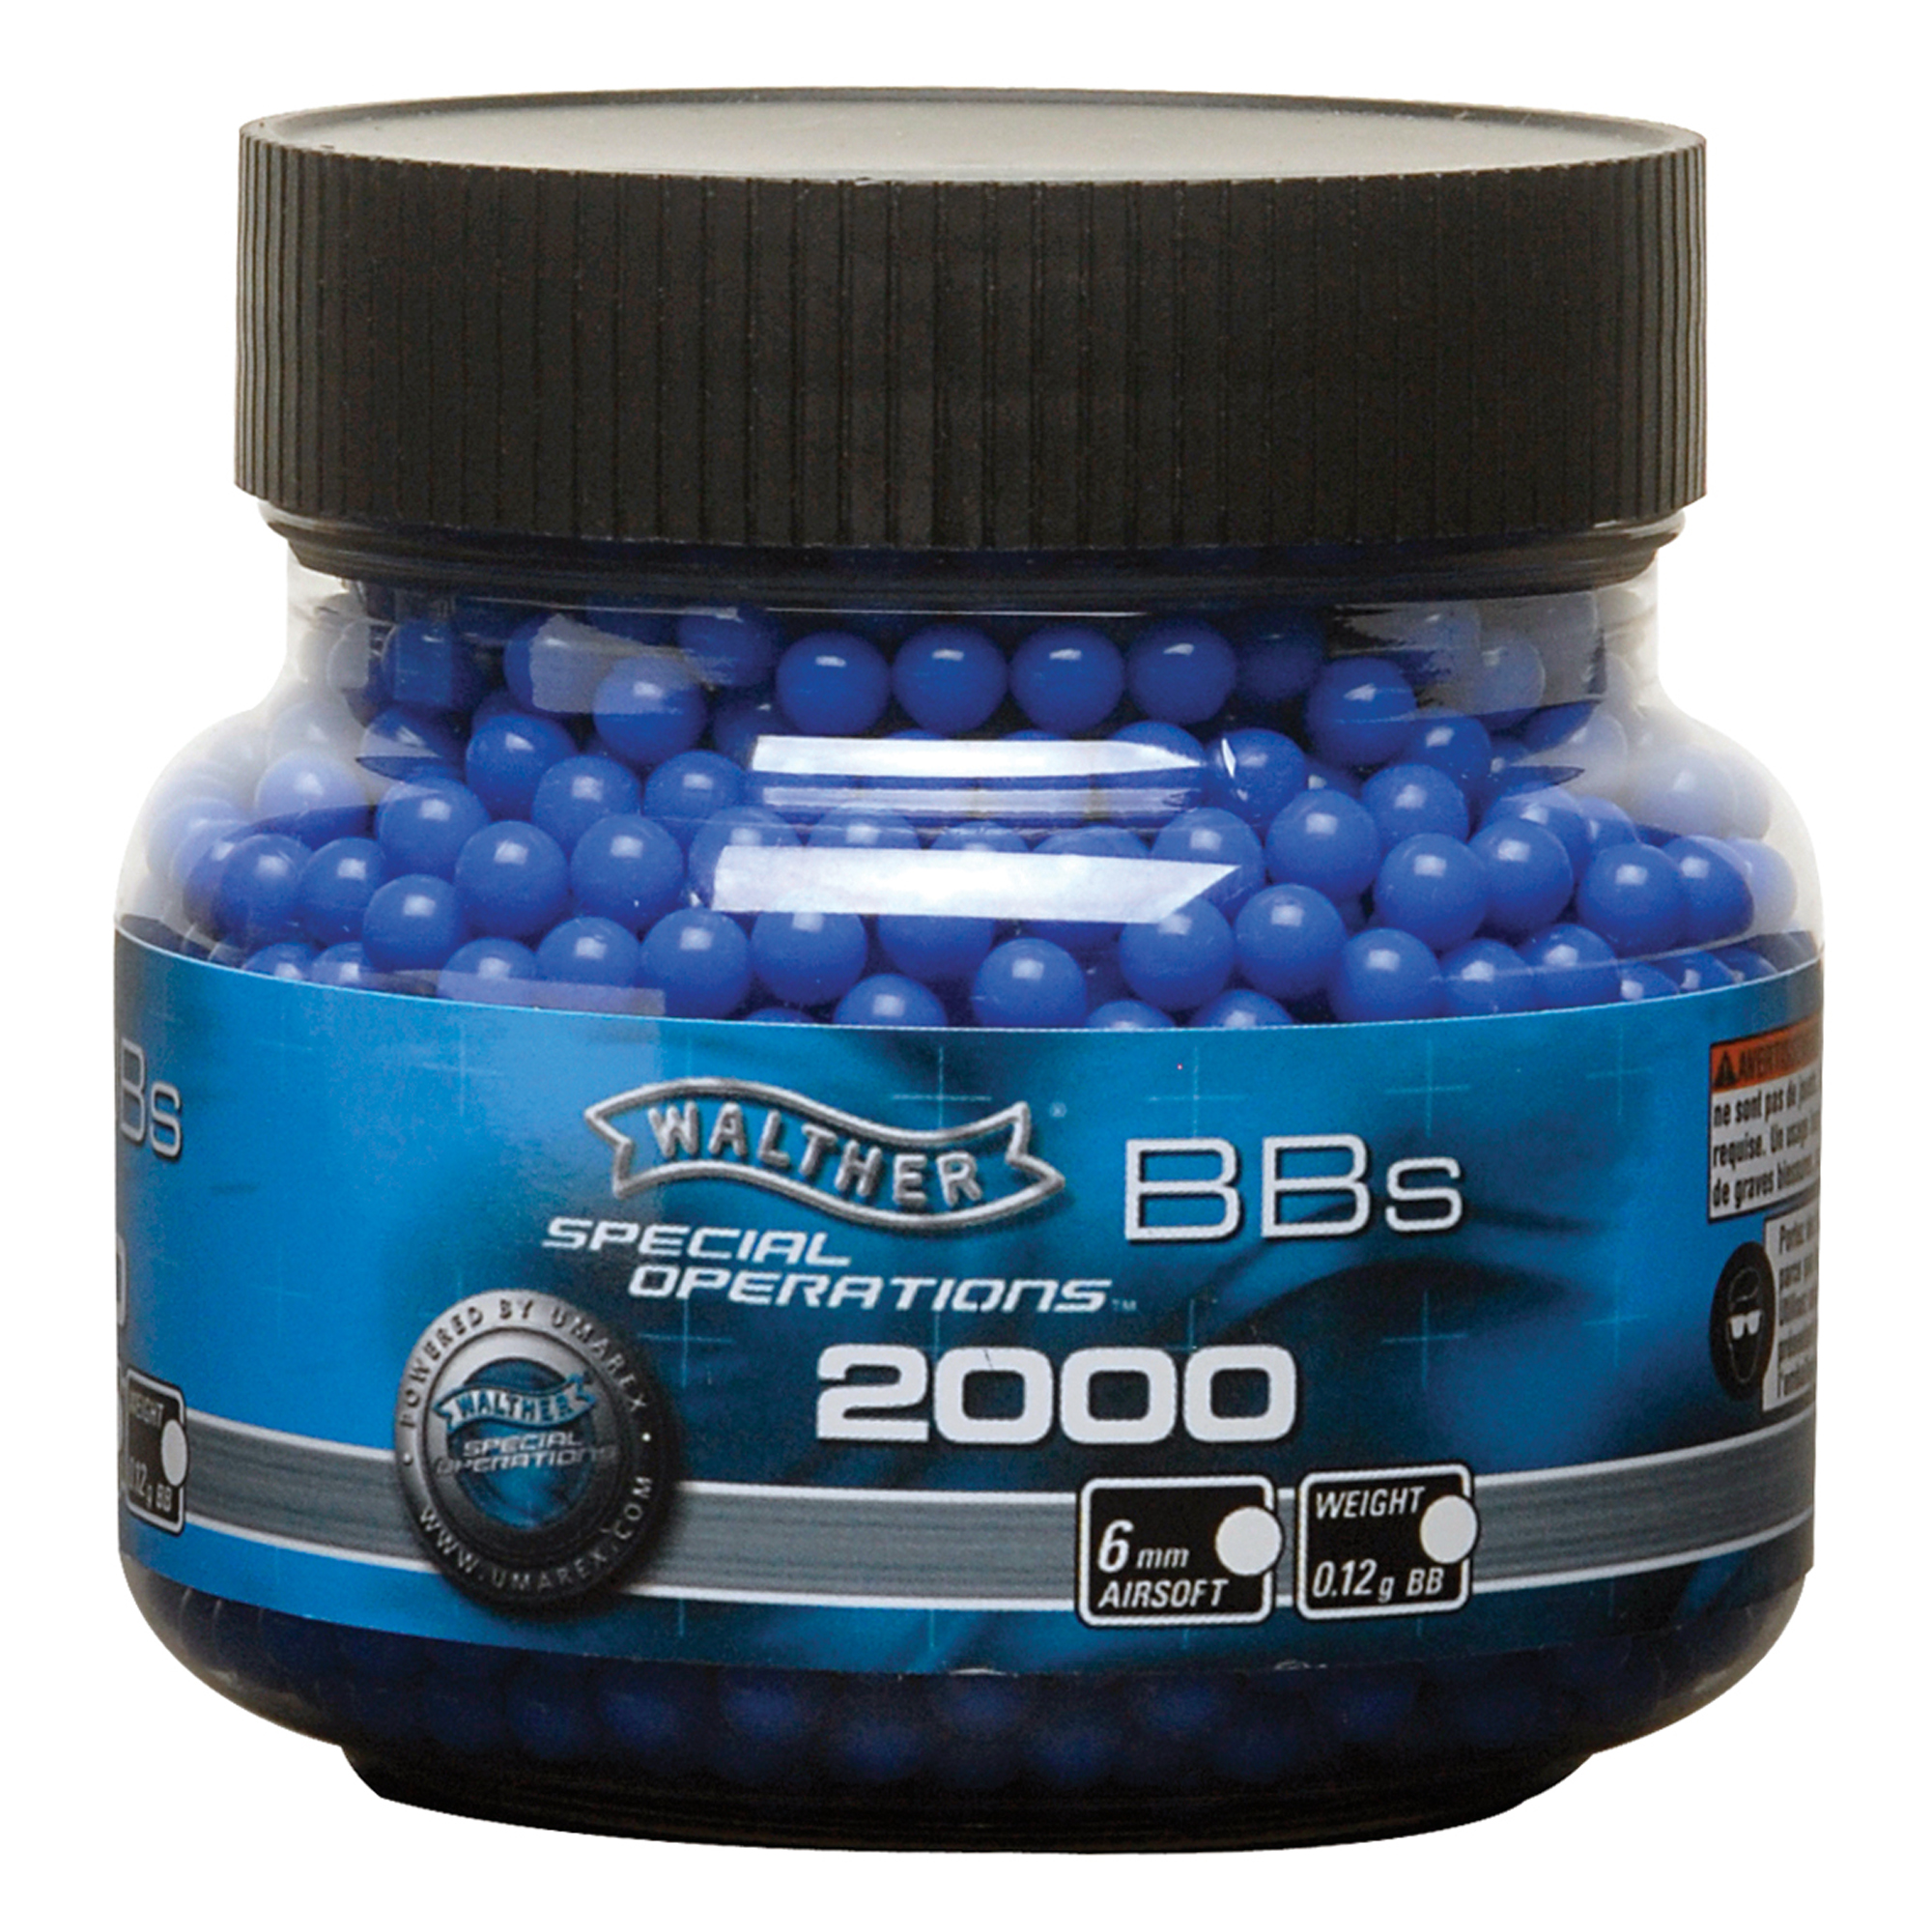 Walther 6mm .12 gram Blue Synthetic Airsoft BBs, 2,000 Count